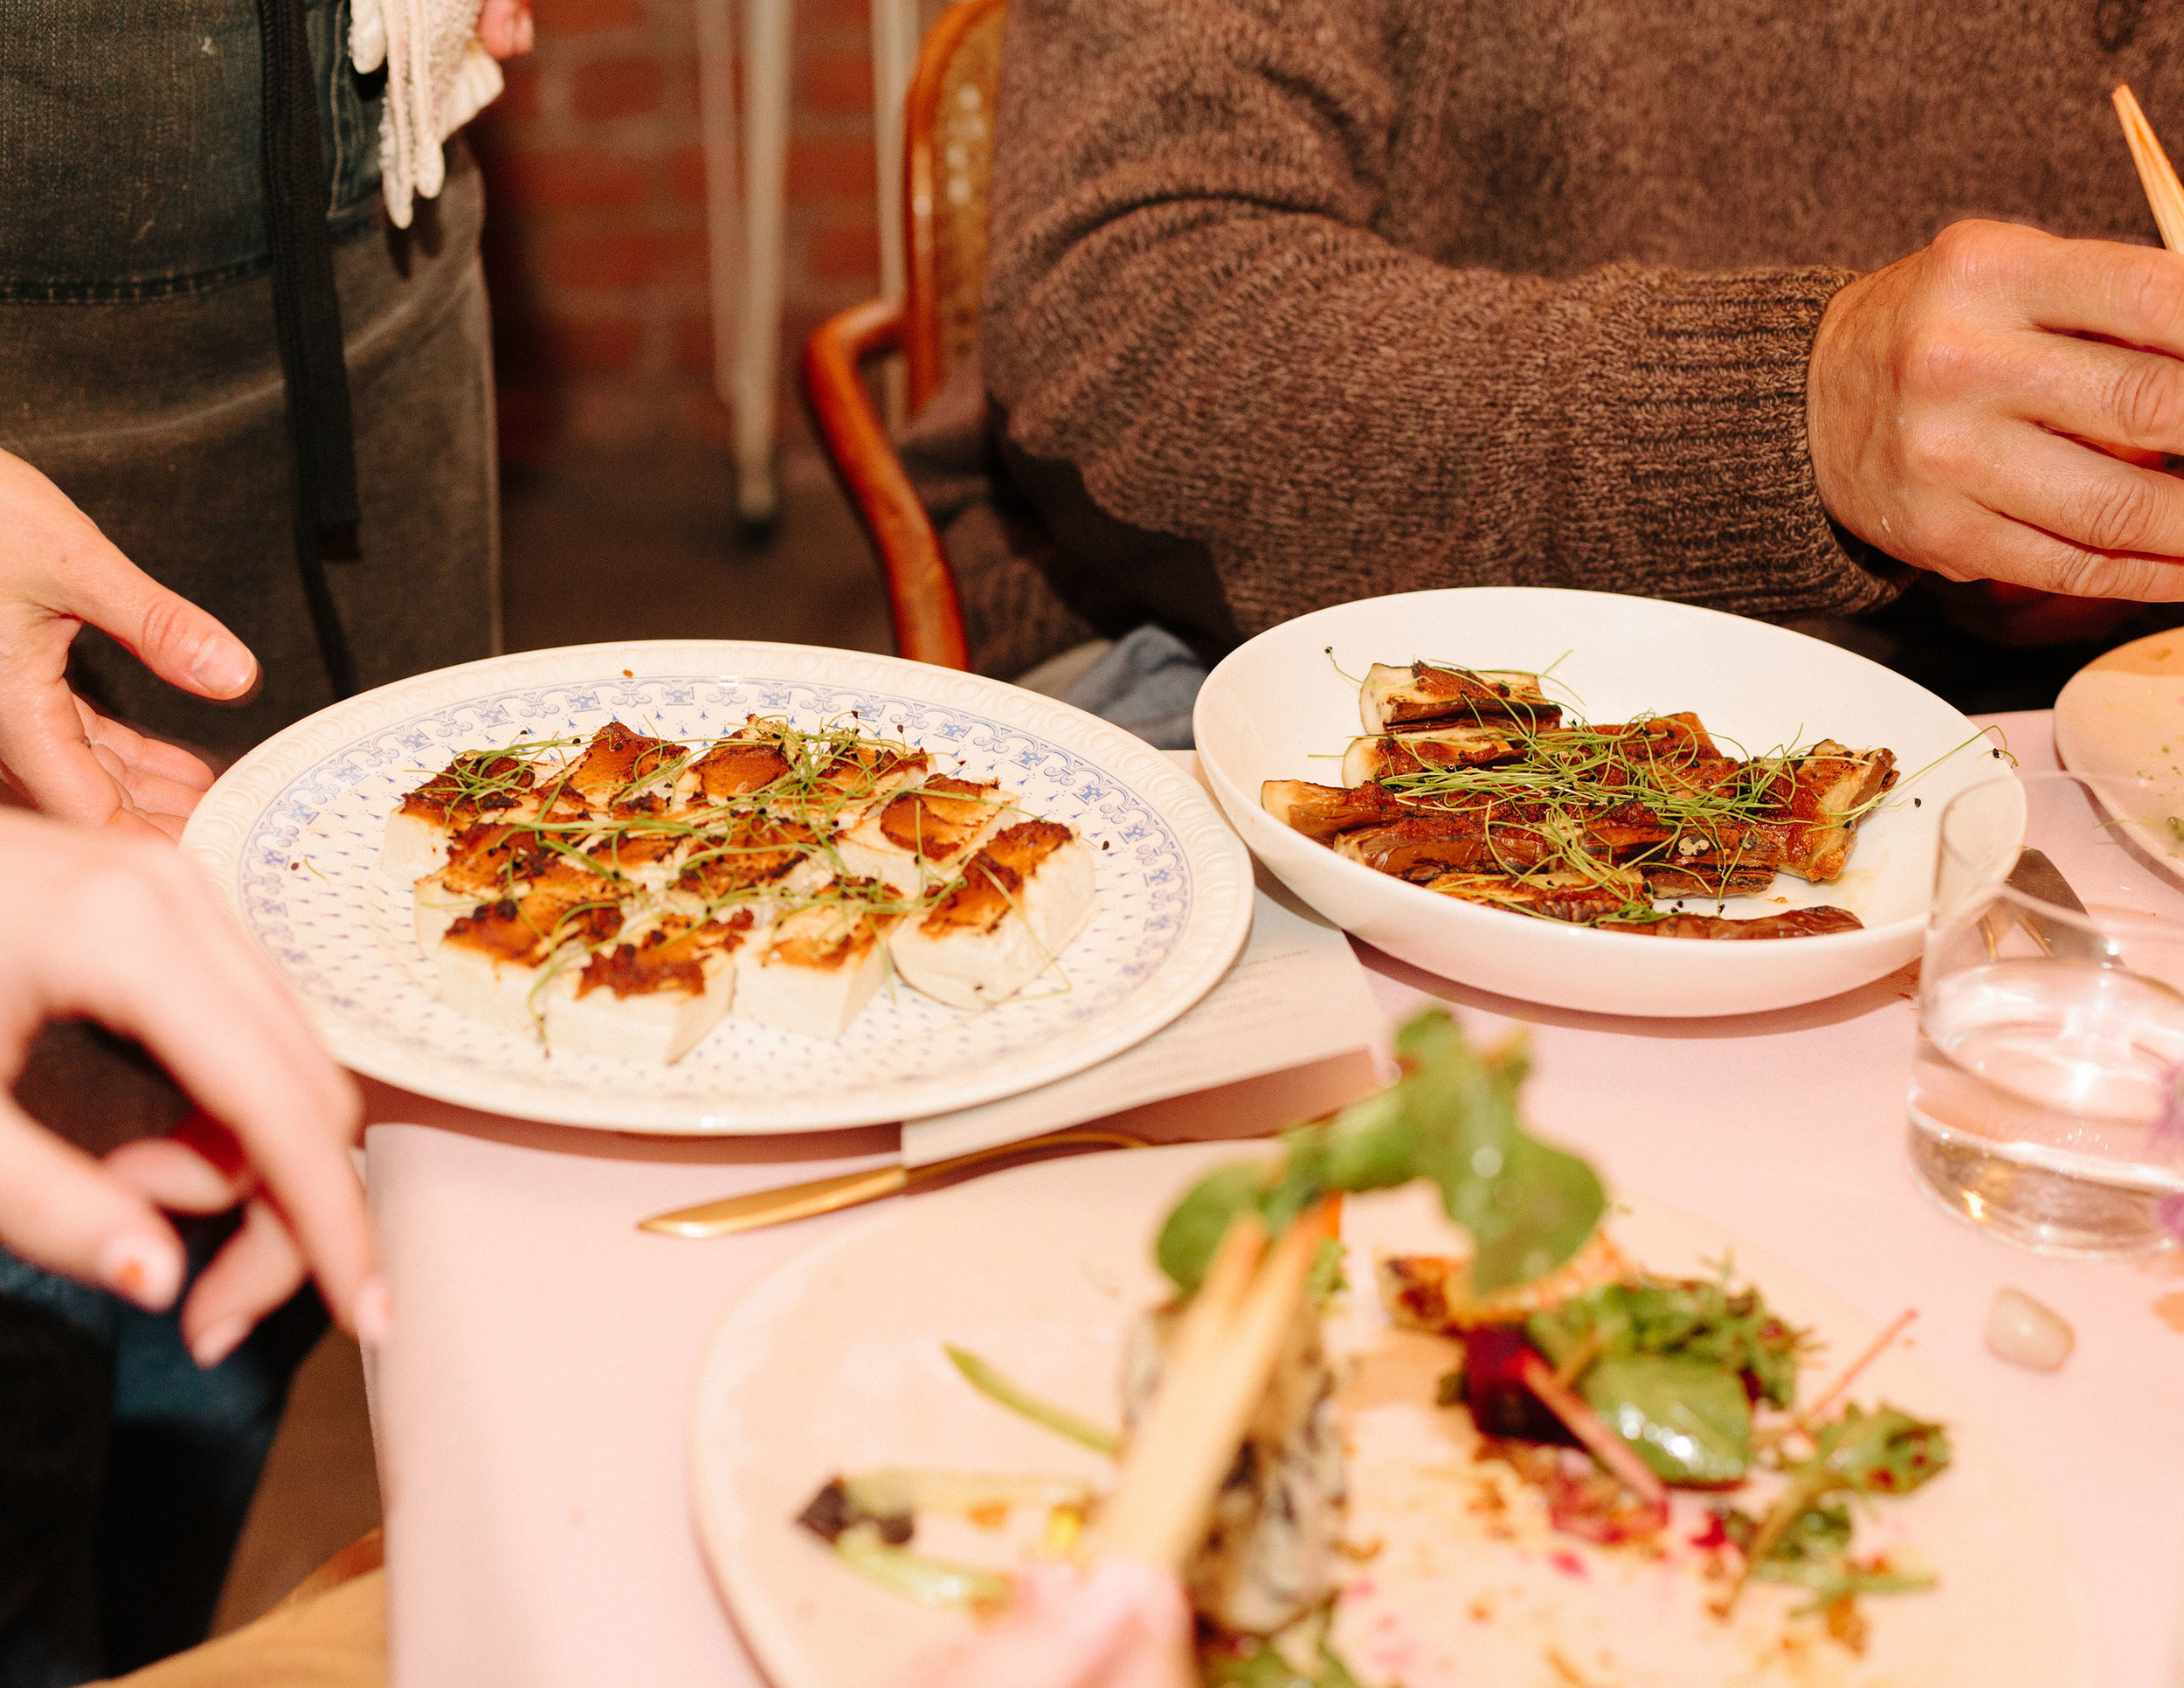 76-provisions-citymeals-mothers-day.jpg